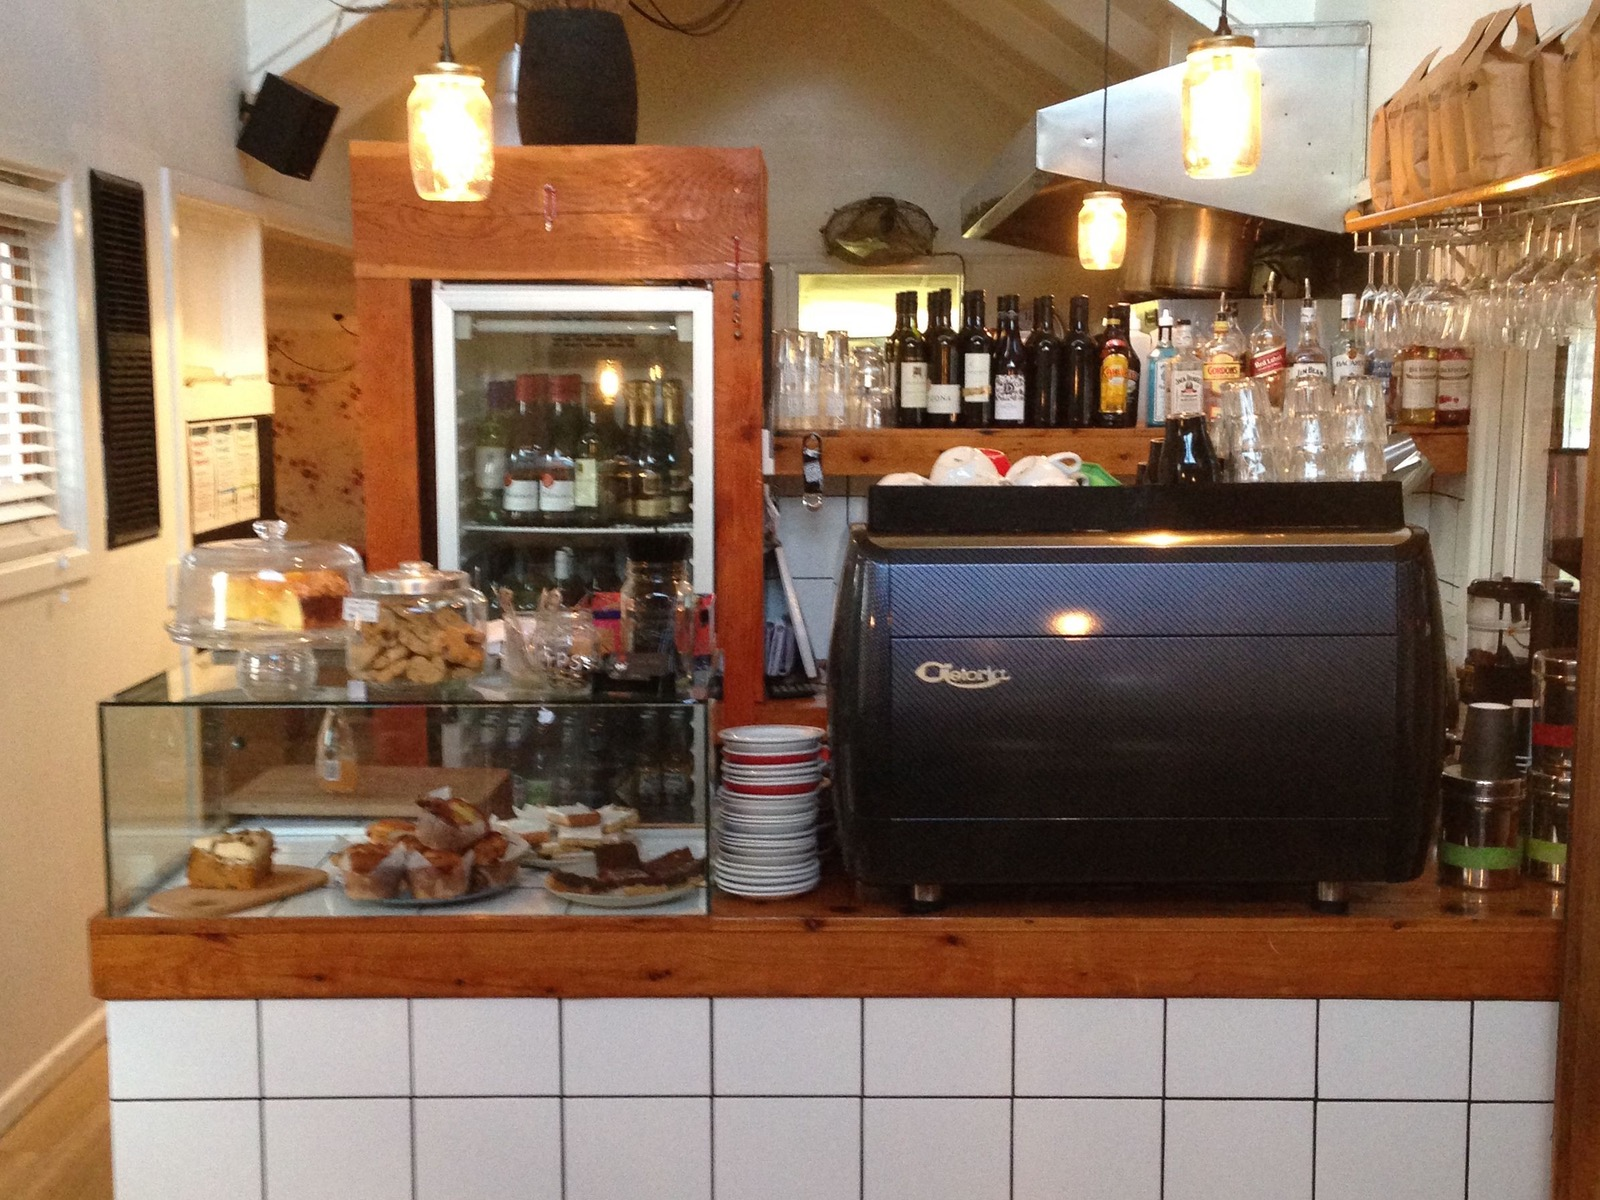 Coffee counter at Ginger Baker